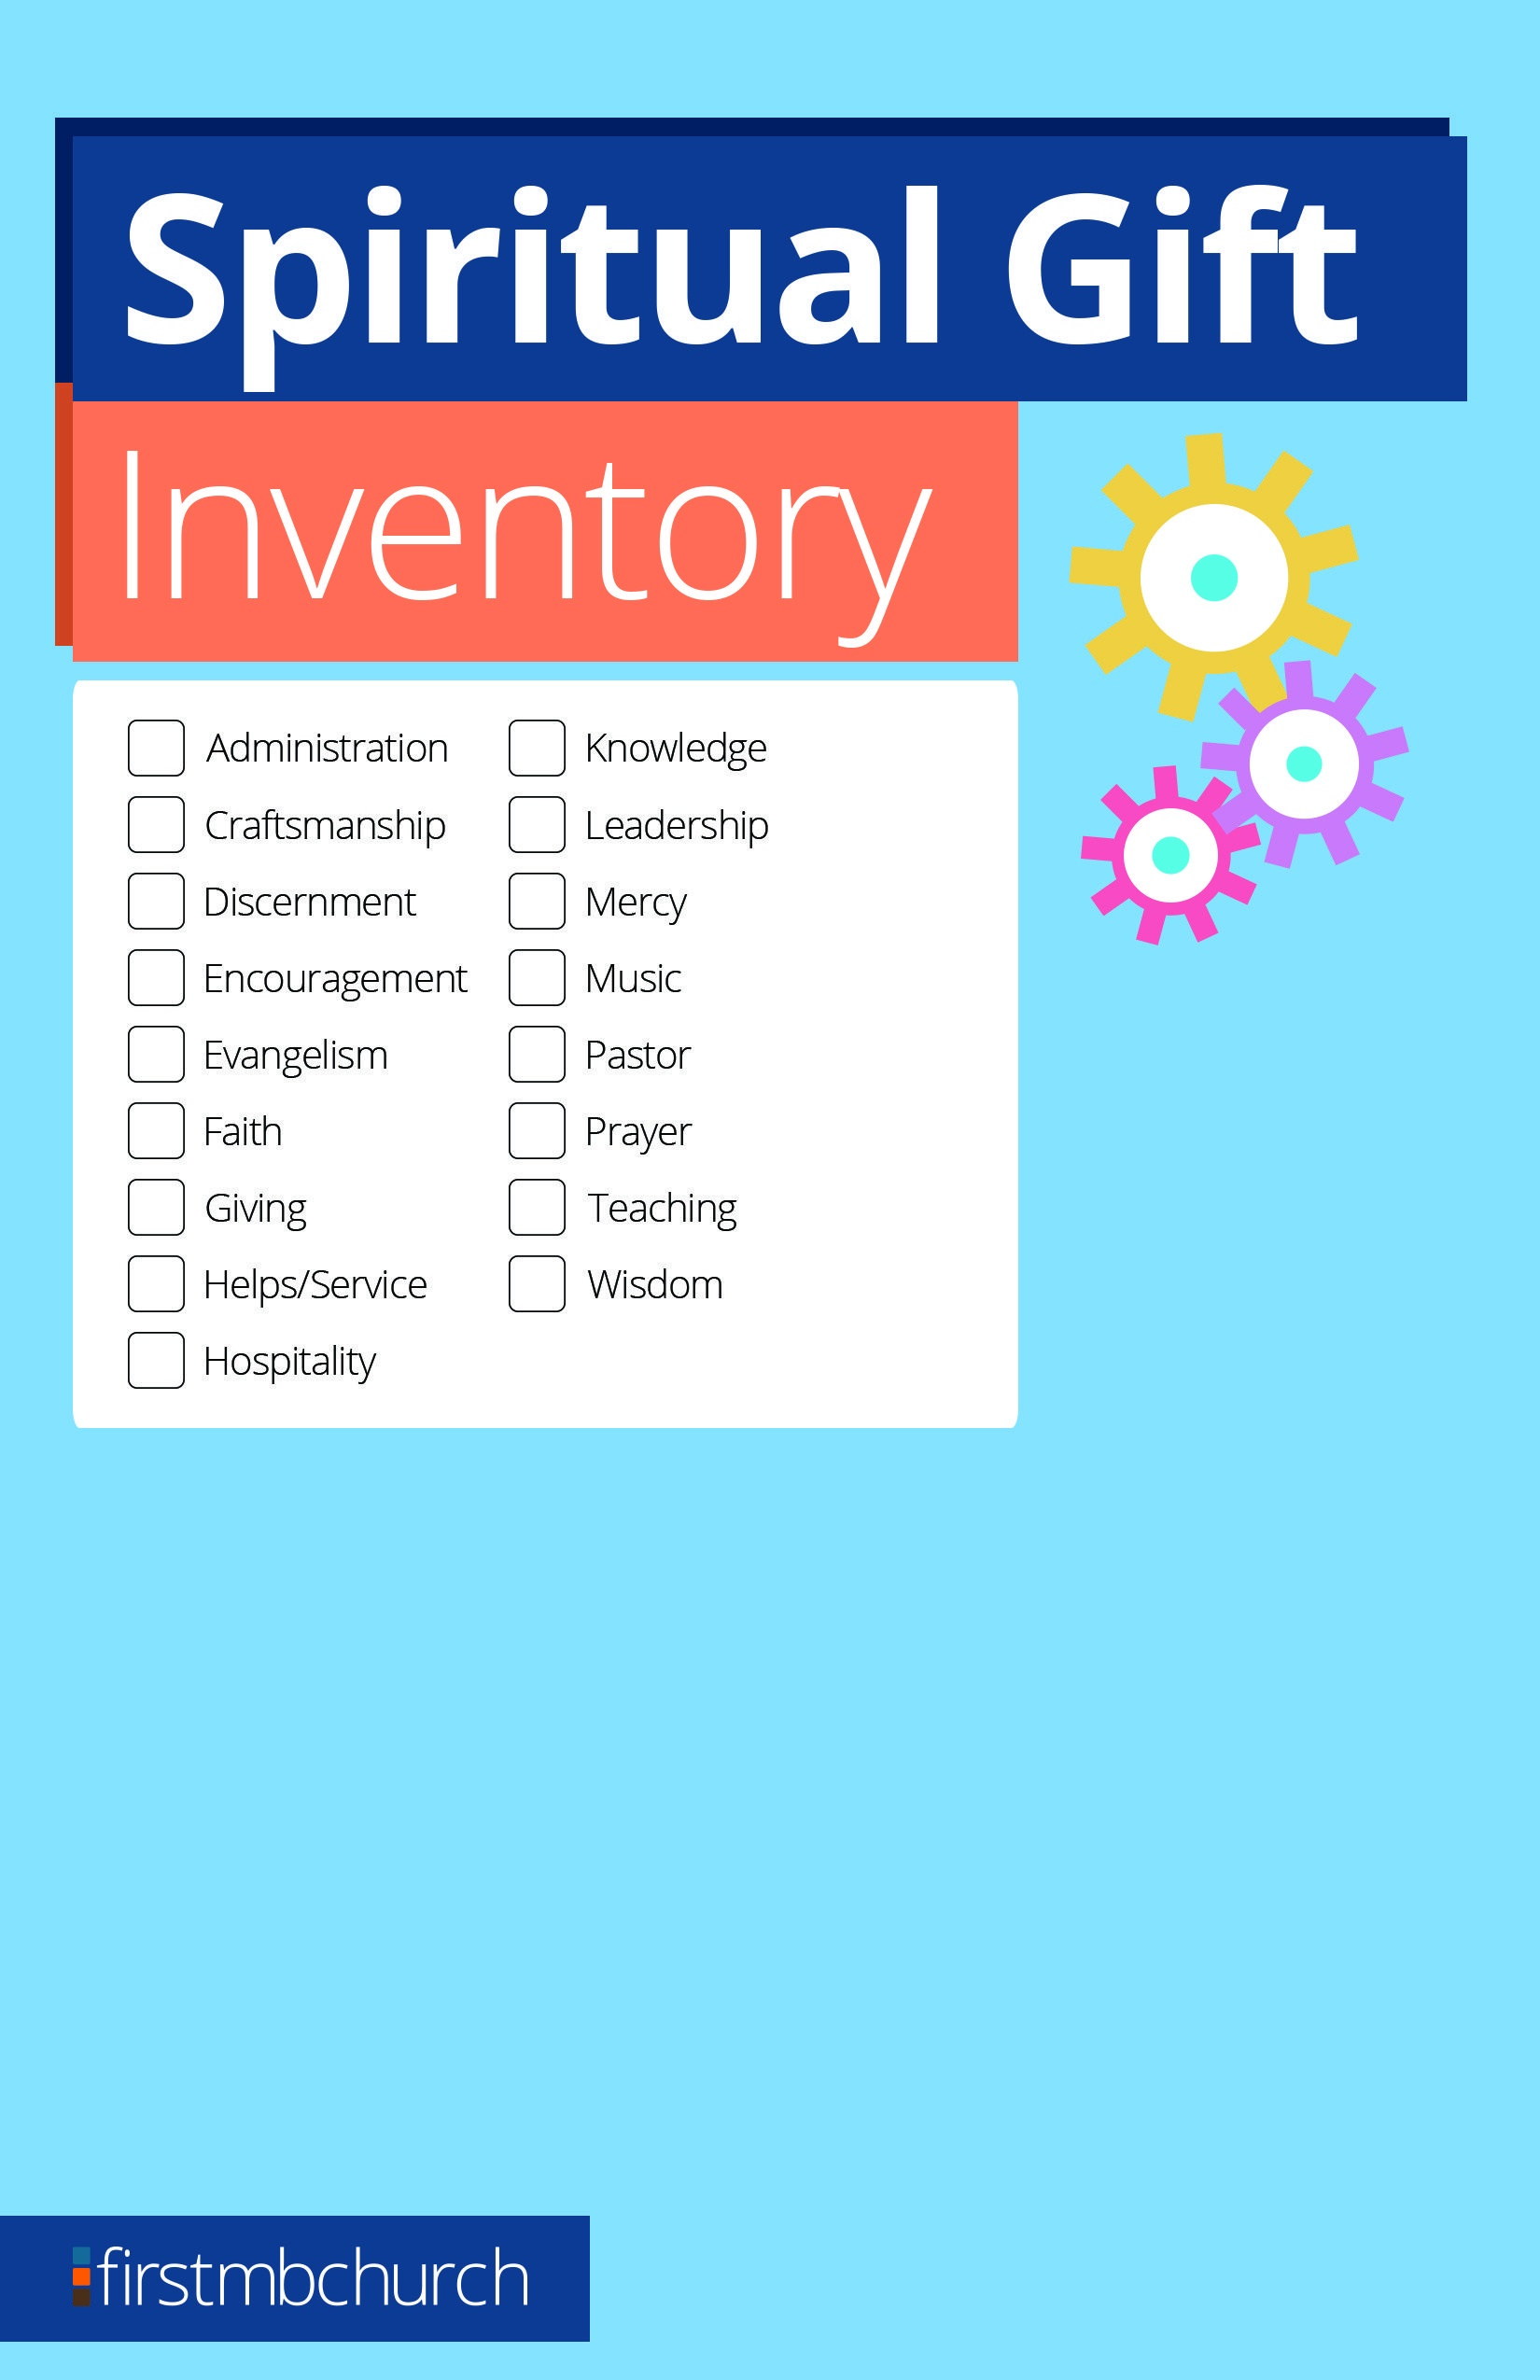 Pinfirst Mb Church On Resources | Spiritual Gifts Inventory - Free Printable Spiritual Gifts Test For Youth